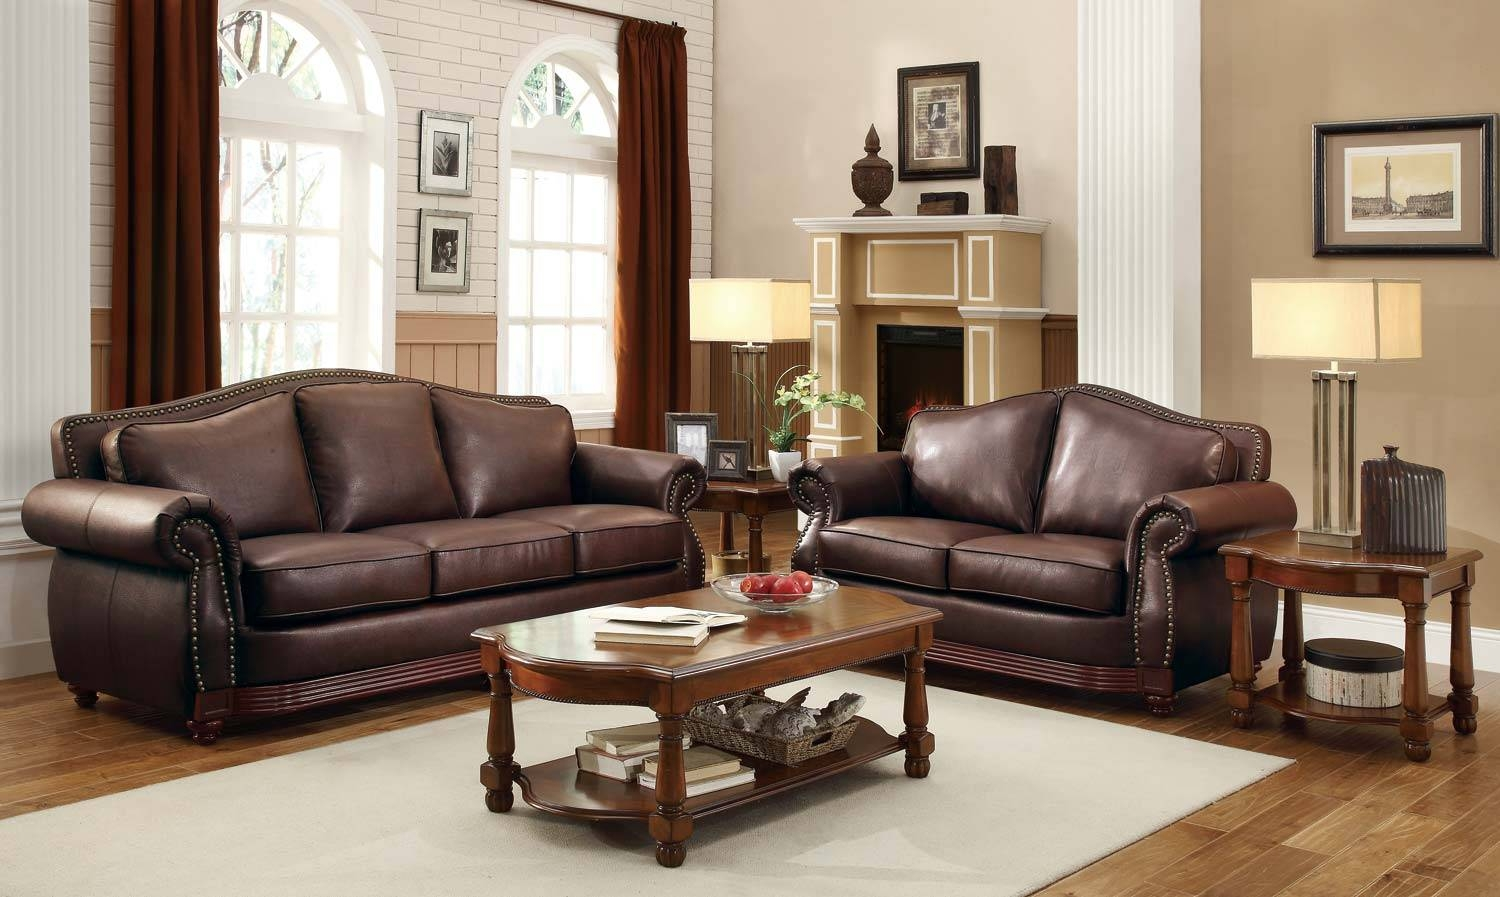 Homelegance Midwood Bonded Leather Sofa Collection - Dark Brown regarding Traditional Leather Couch (Image 12 of 30)